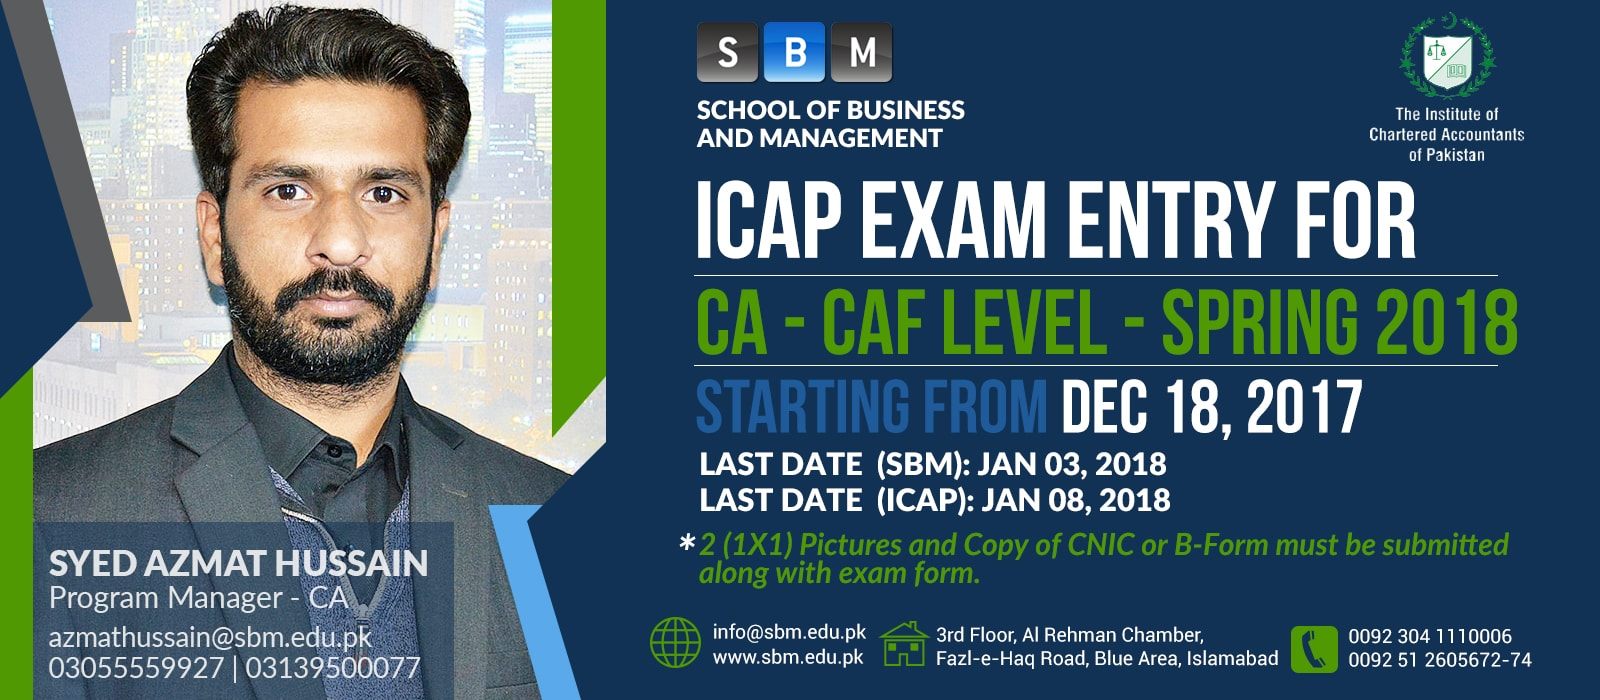 ICAP Exam Entry for CAF level Session Spring 2018